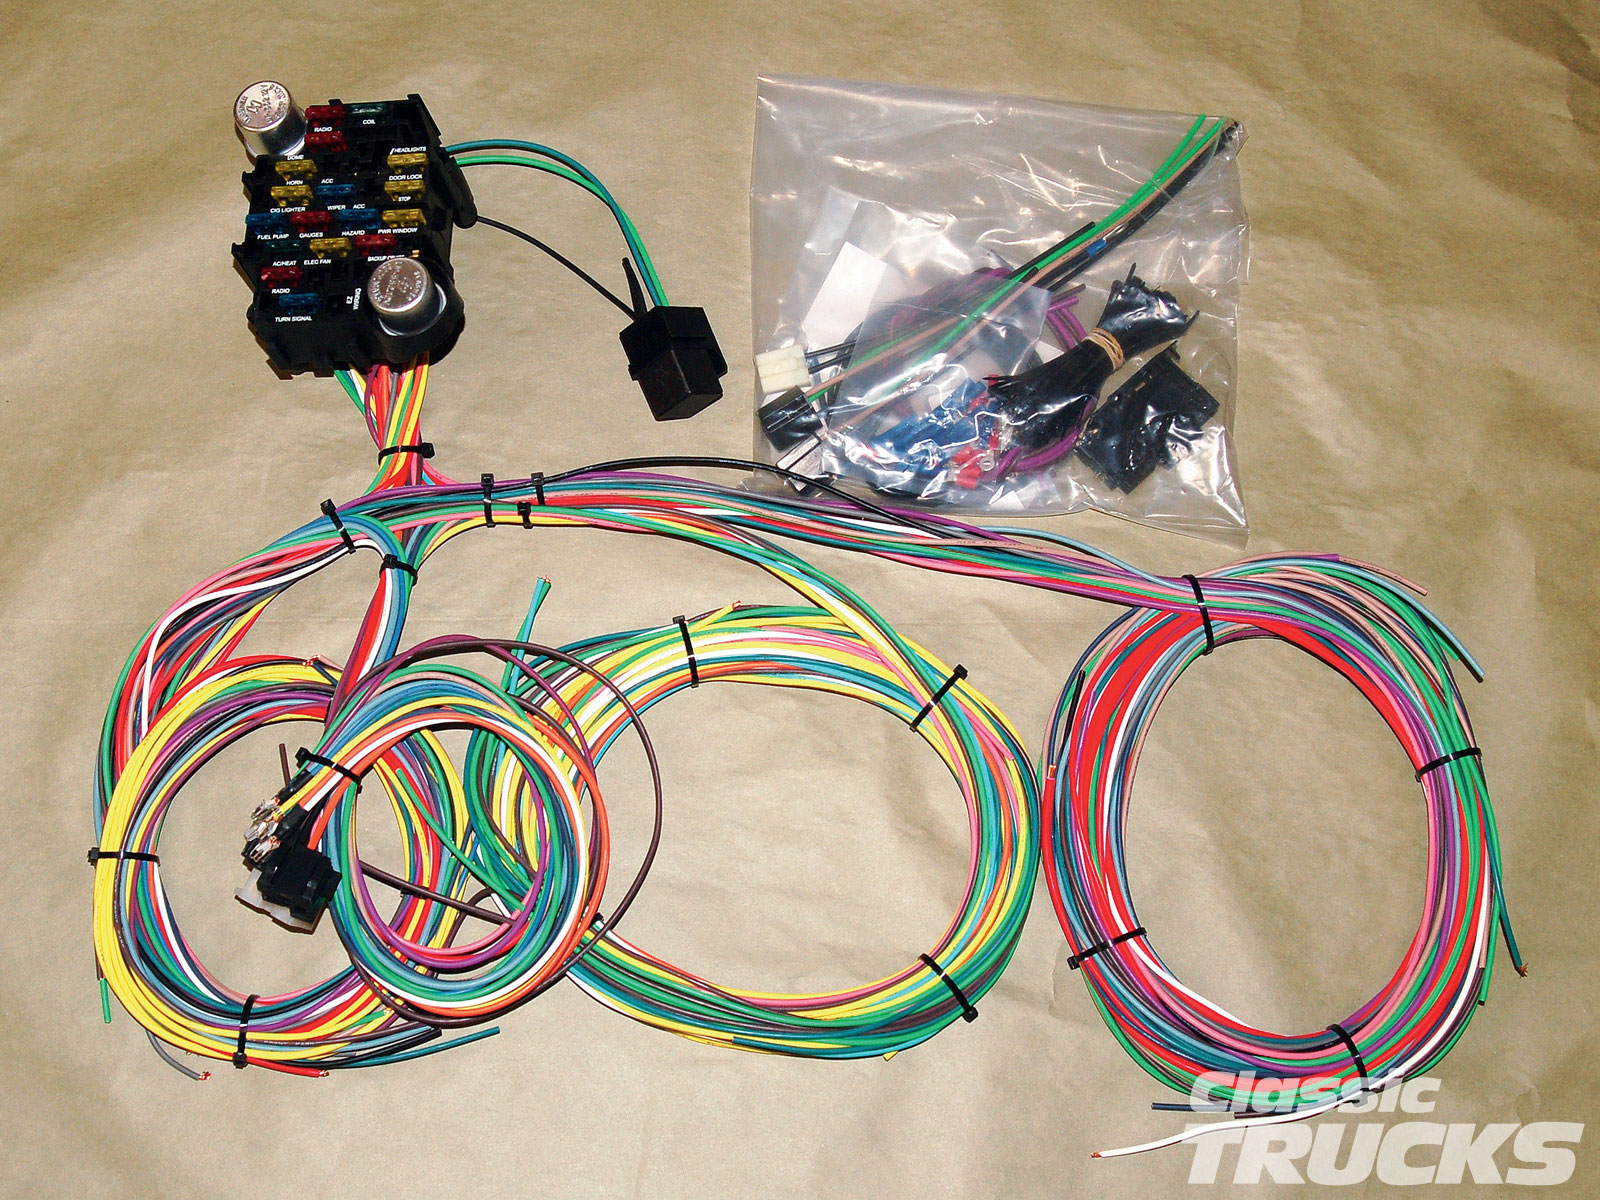 1010clt 02 o aftermarket wiring harness install kit?resize=640%2C480 how much does a wire harness cost to replace hobbiesxstyle how much does it cost to replace a wiring harness at webbmarketing.co